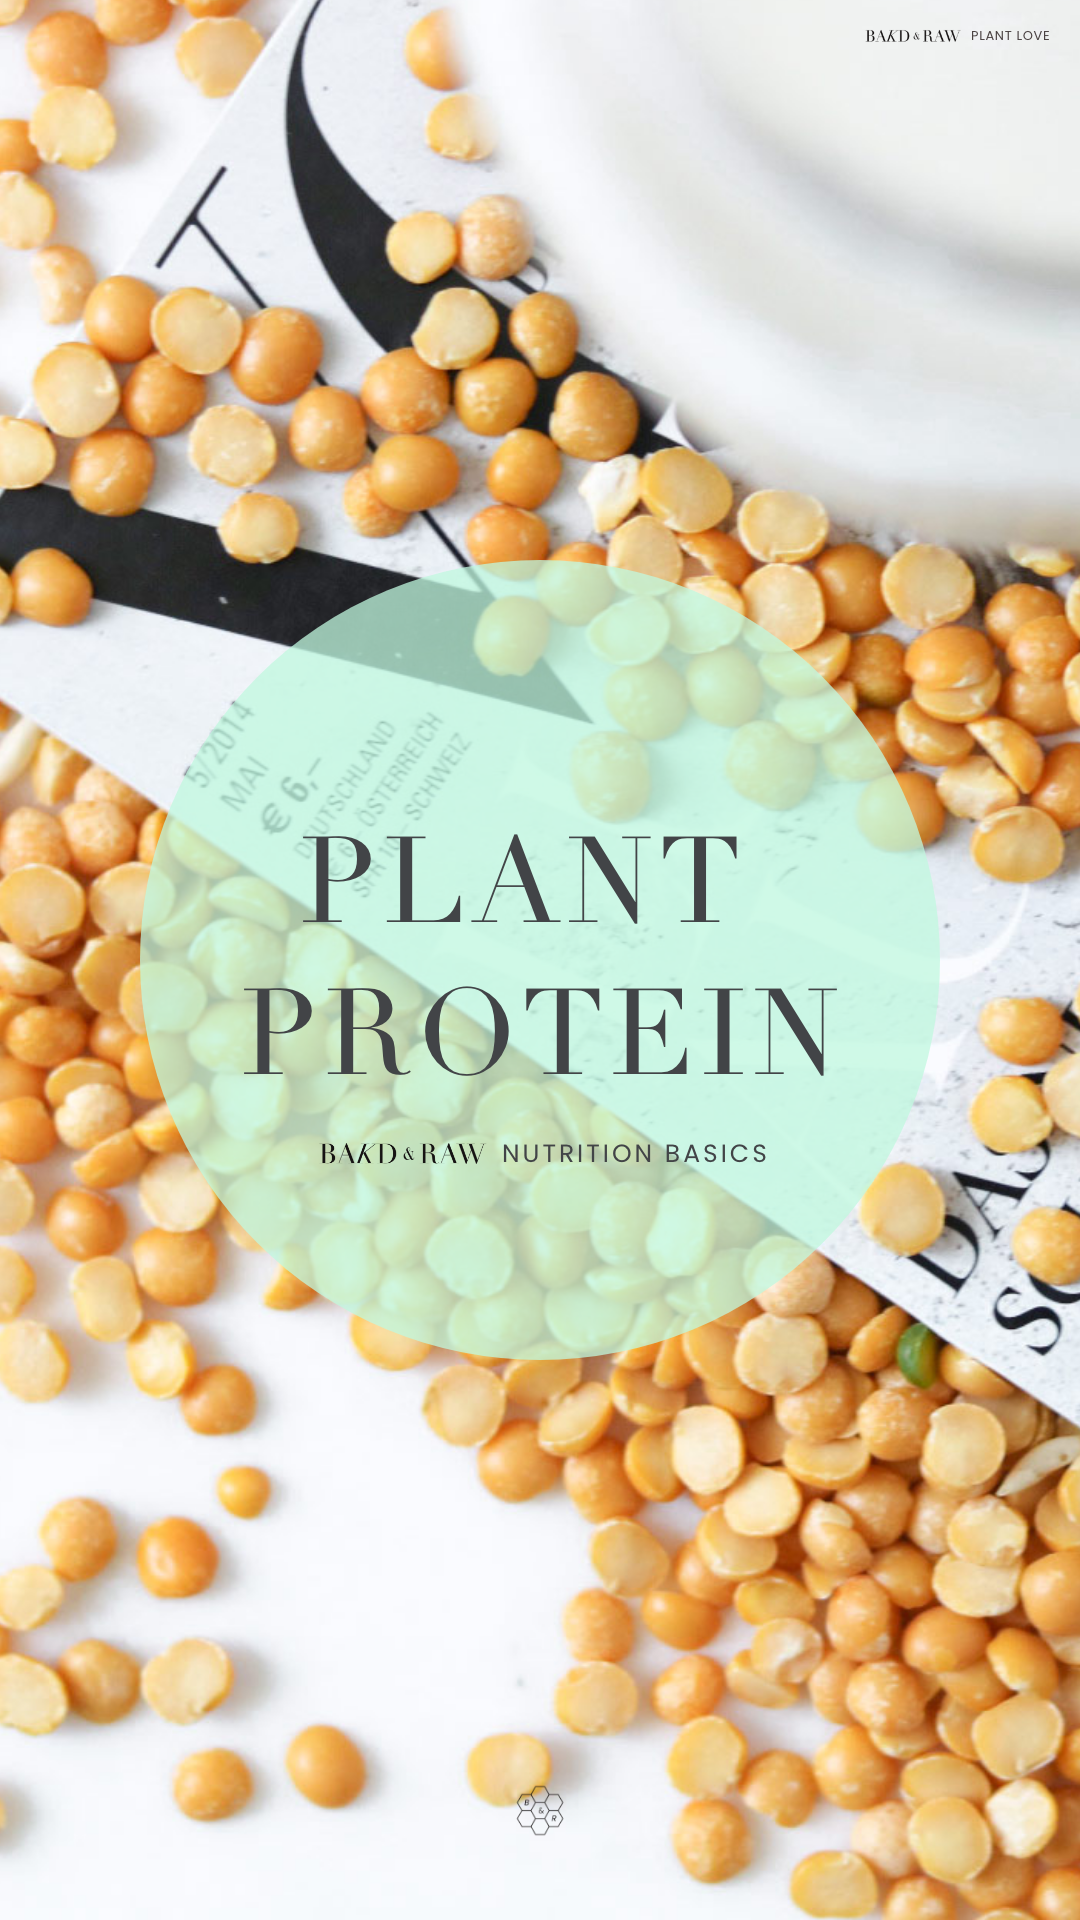 Bakd&Raw Plant Protein Guide; Yellow Peas